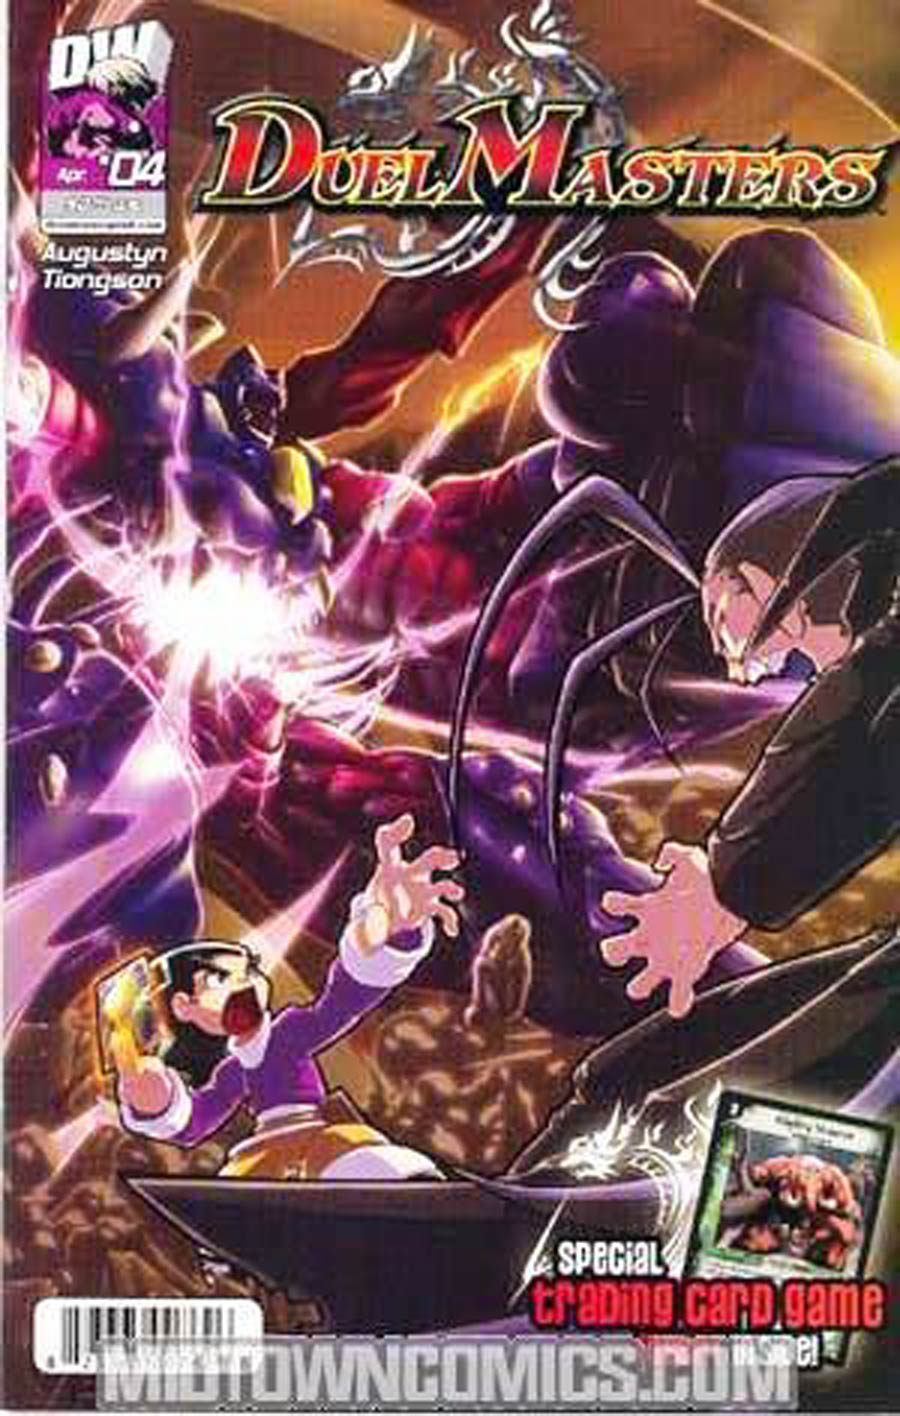 Duel Masters #4 Cover B Without Polybag